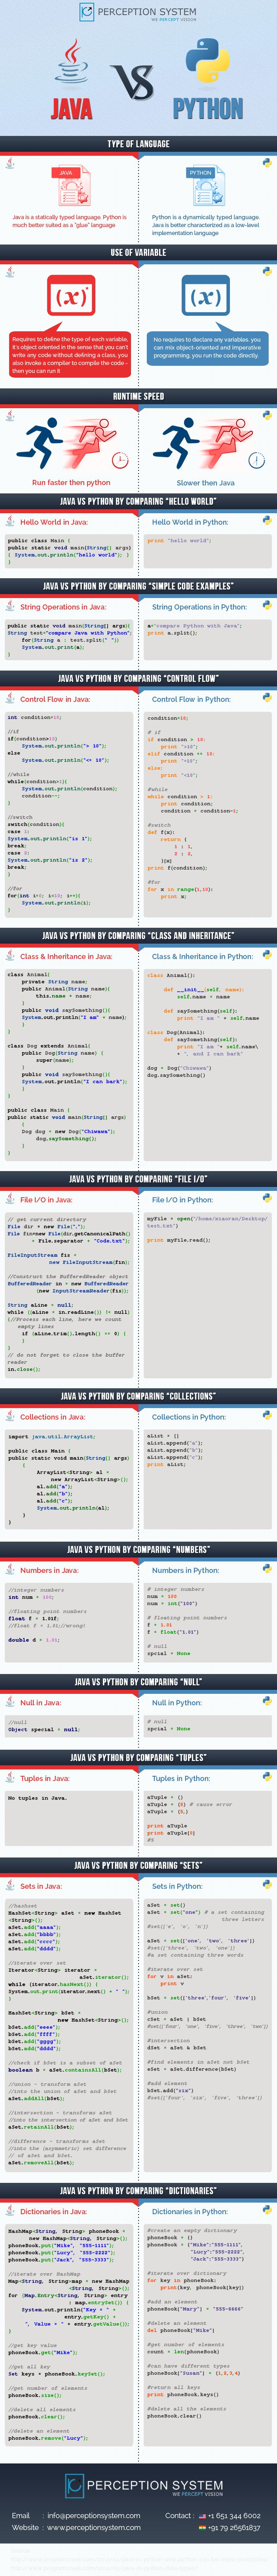 Python vs Java - Which Programming Language is More Productive? | The Crazy Programmer - Programming, Design & Development